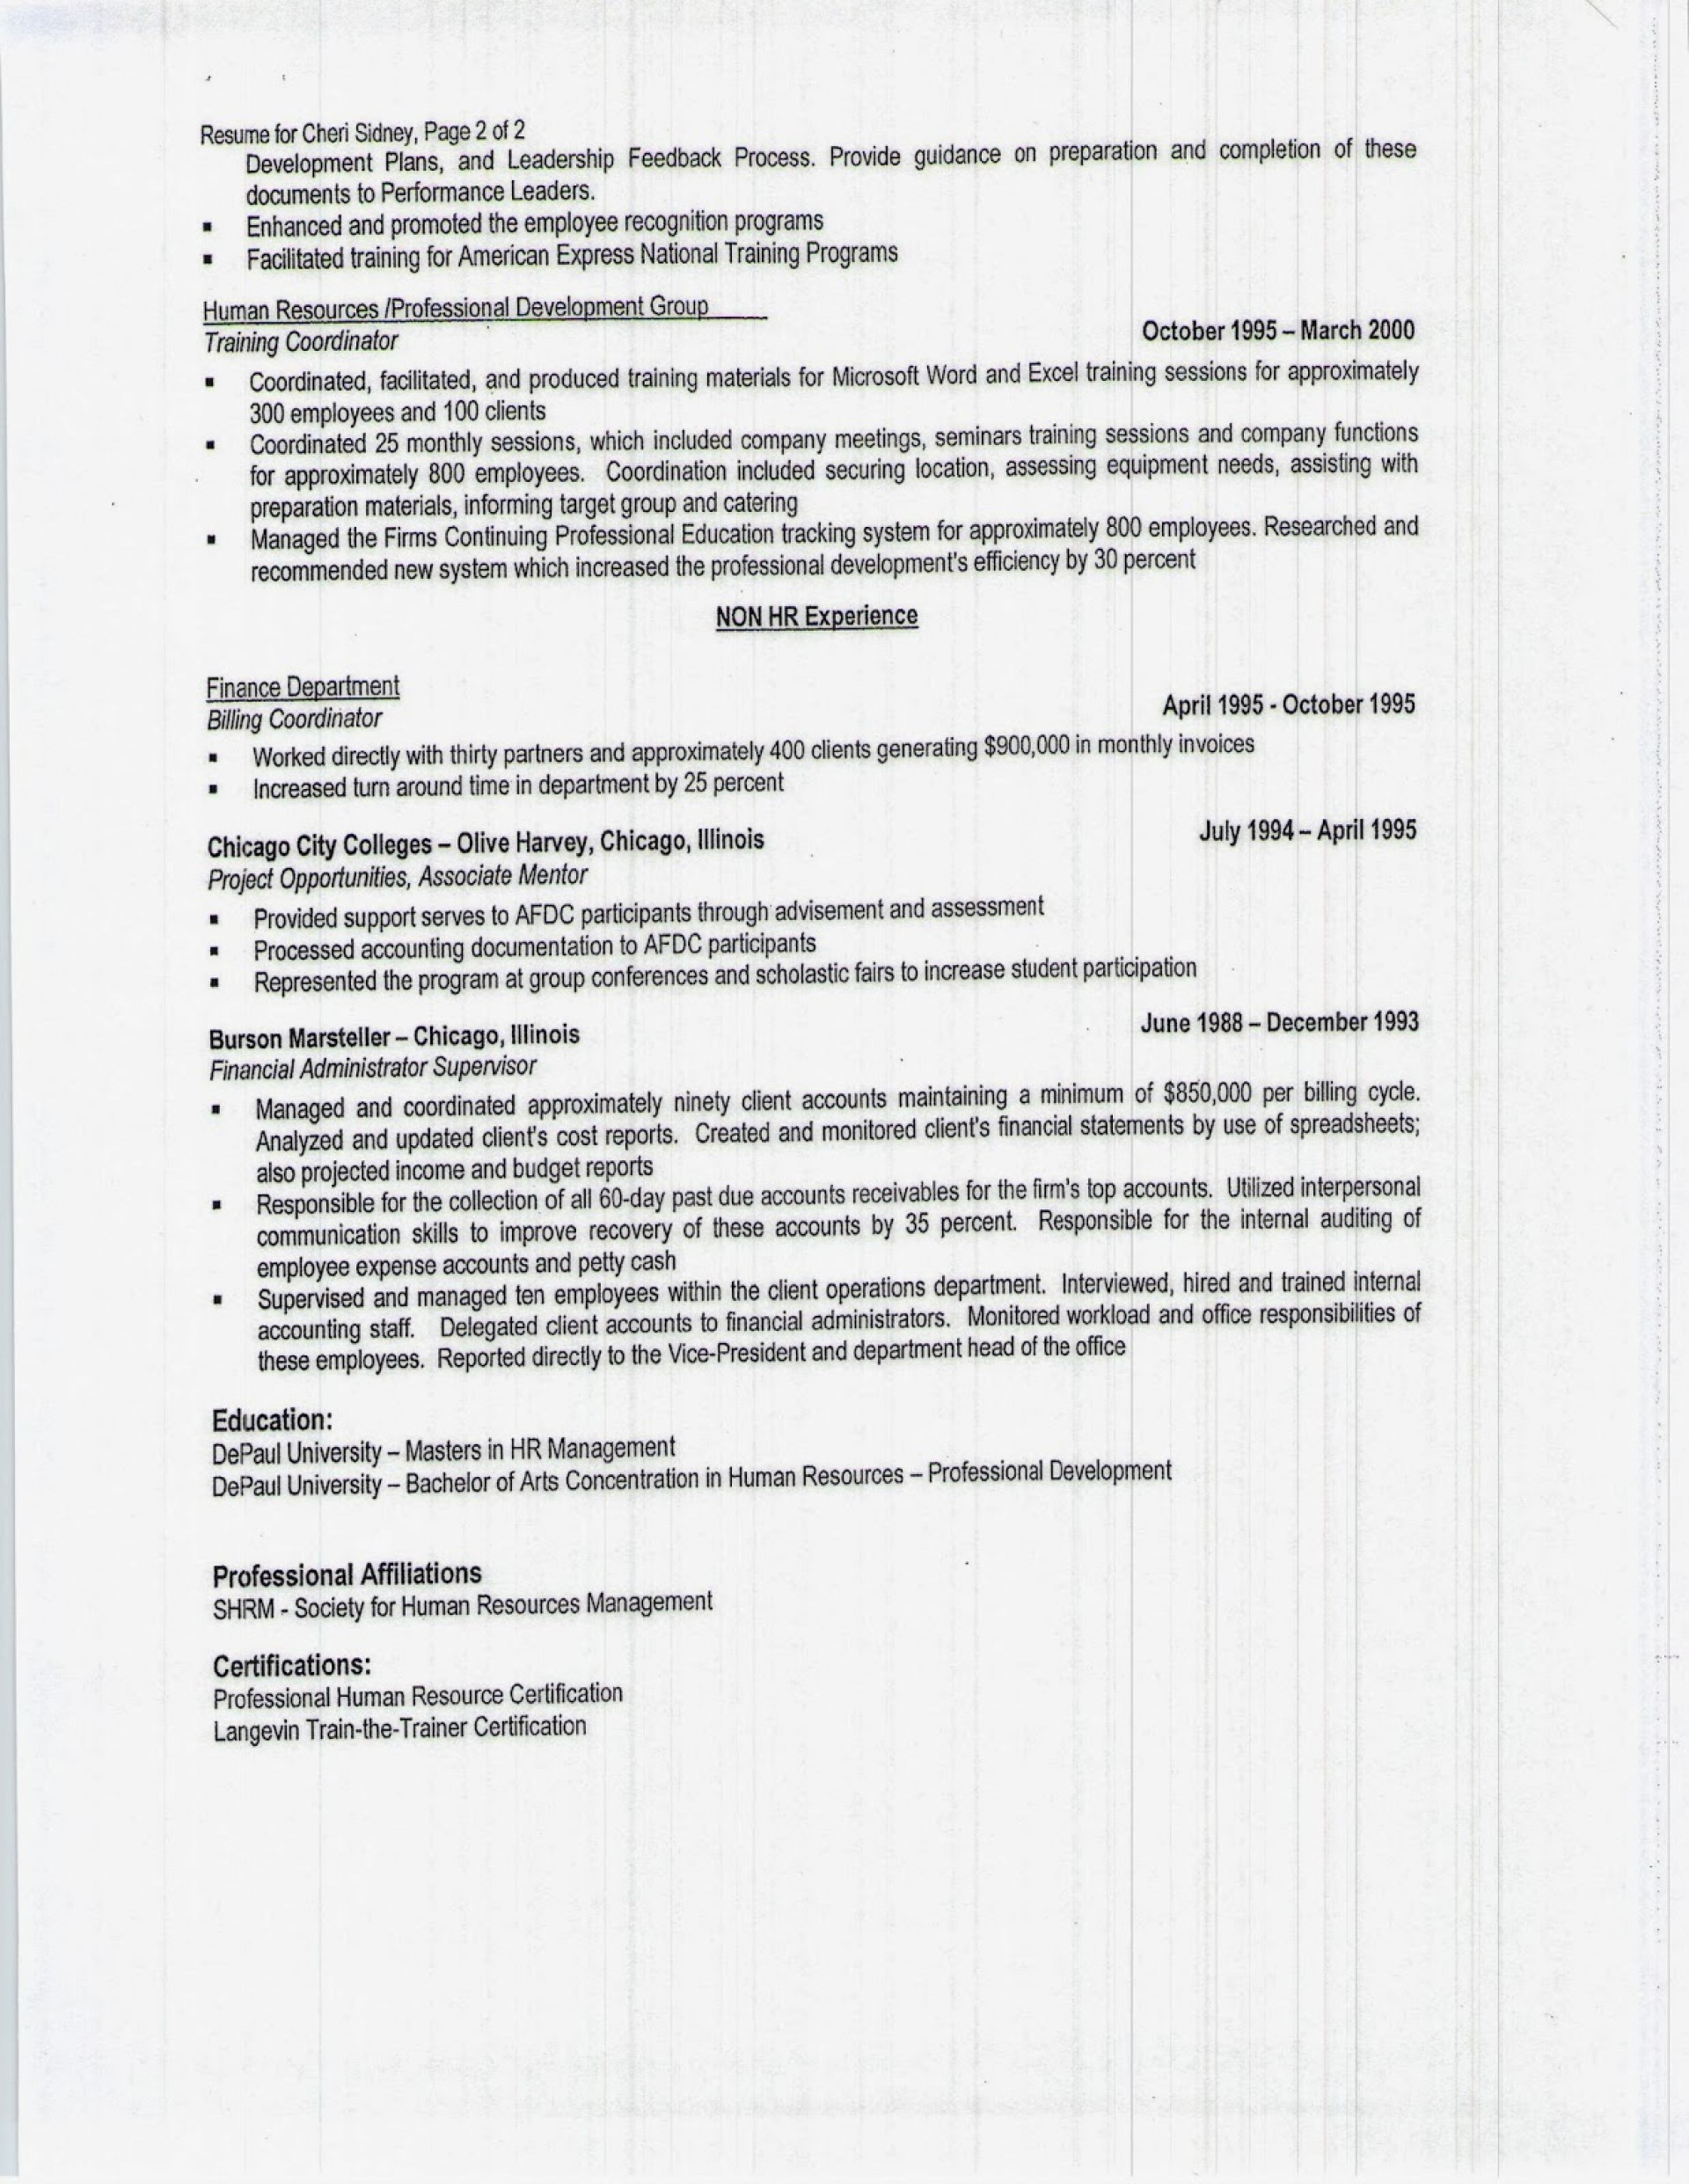 027 Essay Example Nursing Application Tips How To Write An Letter With Apply Forhip And Sidney0001 Jpg W 1237x1600px Singular Scholarship Rotc Psc Reddit 1920